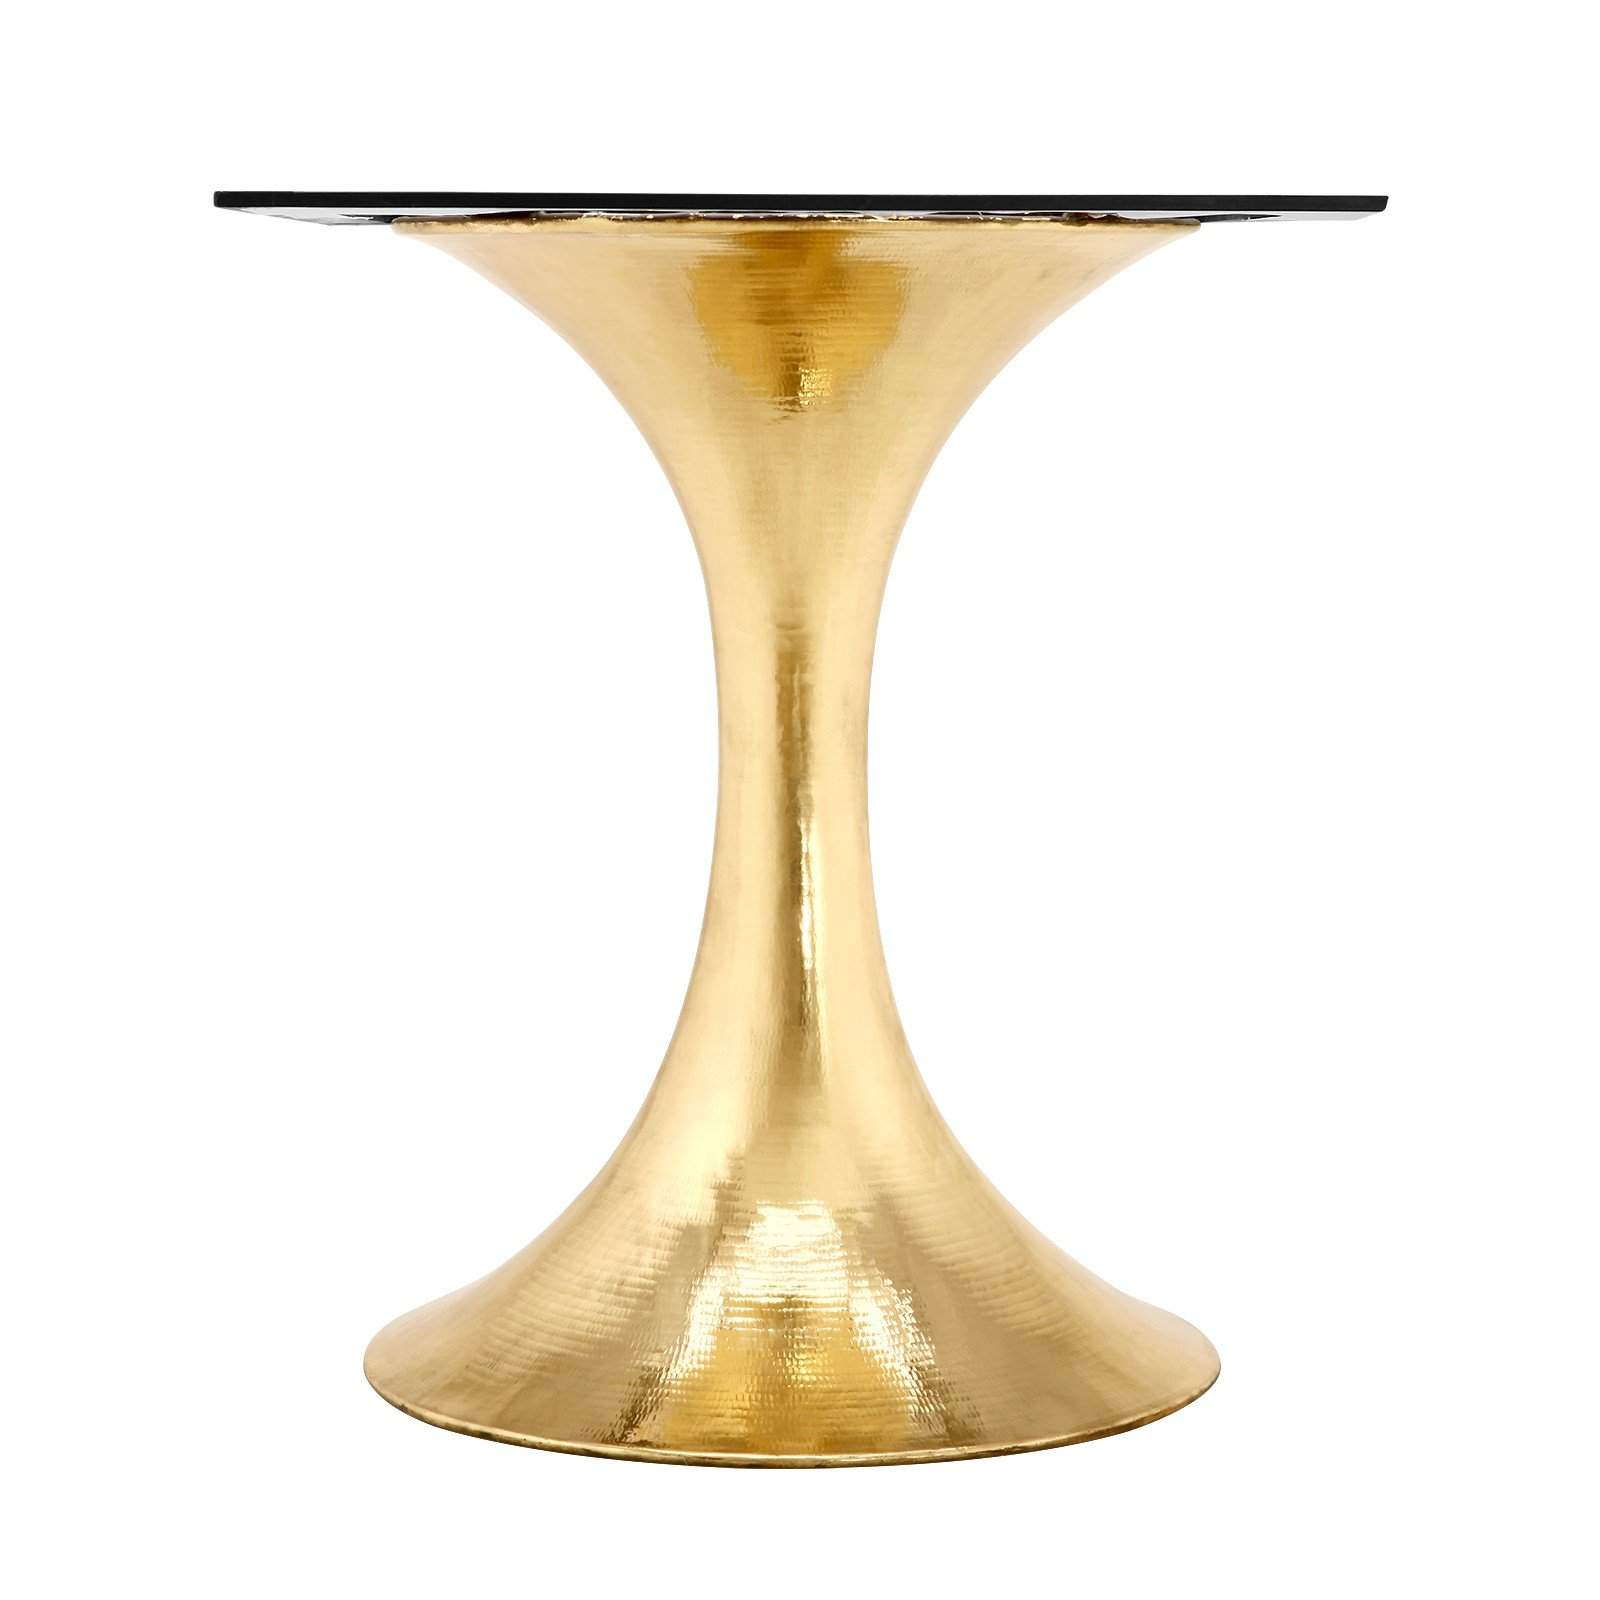 Bungalow 5 Stockholm Brass Dining Table Base Pairs With 52 60 Top Sold Separately